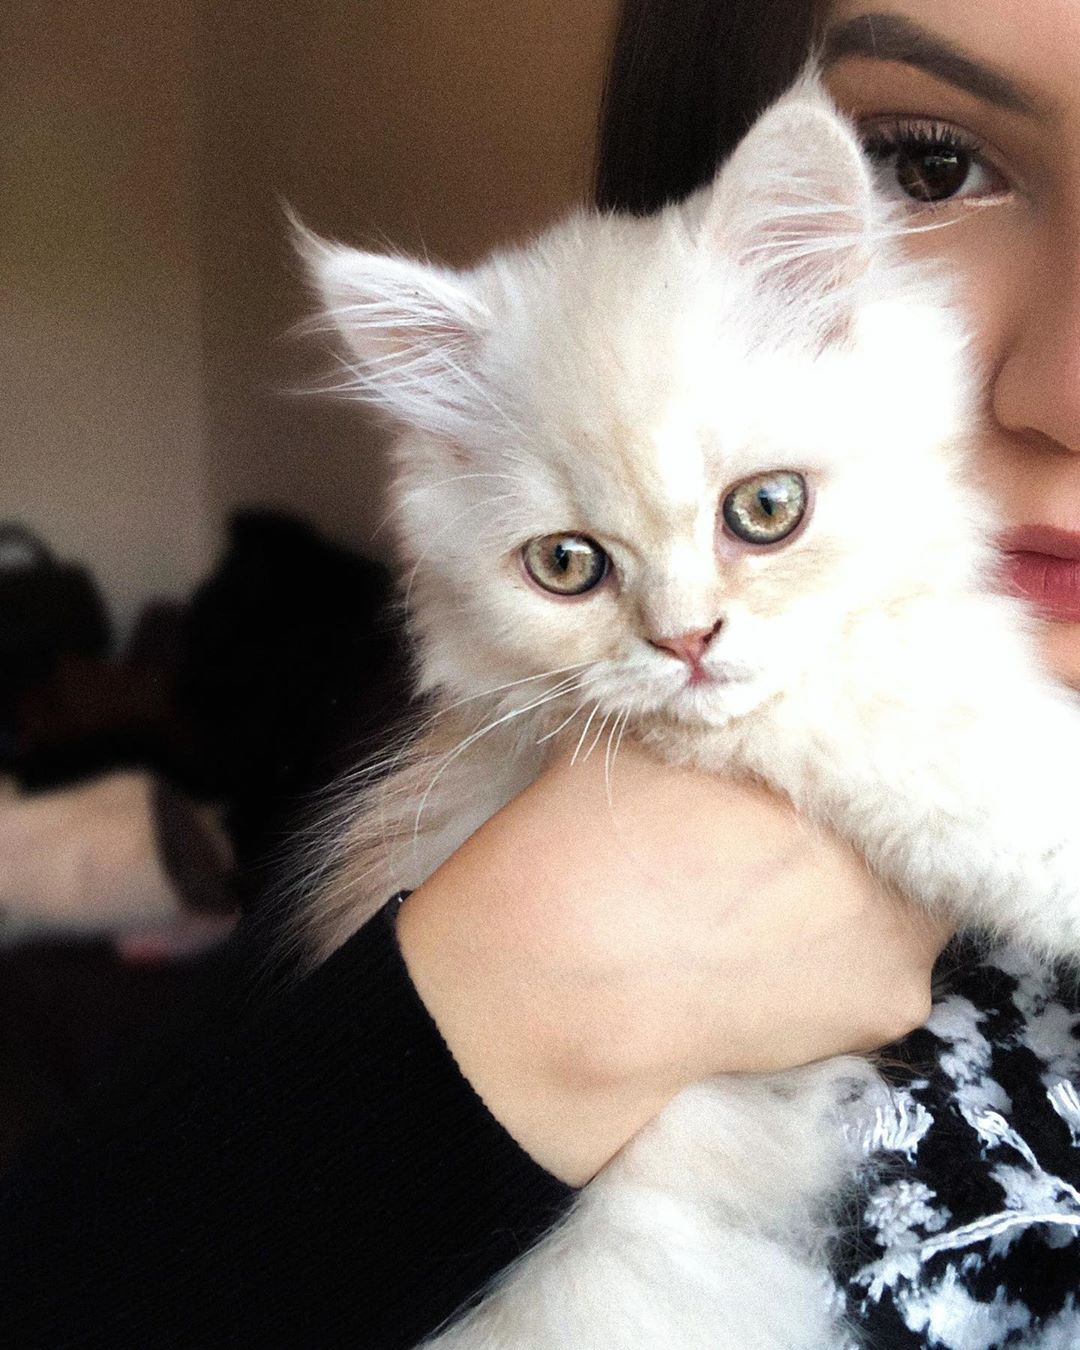 mommy and me  . . . . . . . . - mommy and me 😻🤍 . . . . . . . . #persiancats #catsofinstagram #catmom #whitecat #kitty #kittycat #germany #eyes #cateyes #persiankitten #persiankitty #babycat #follow4follow #like4like #catmeme #catphotography #colorful     Informations About mommy and me  . . . . . . . .                  Pin     You can easily use my profile to examine different pin types. mommy and me  . . . . . . . .                  pins are as aesthetic and useful as you can use them for de